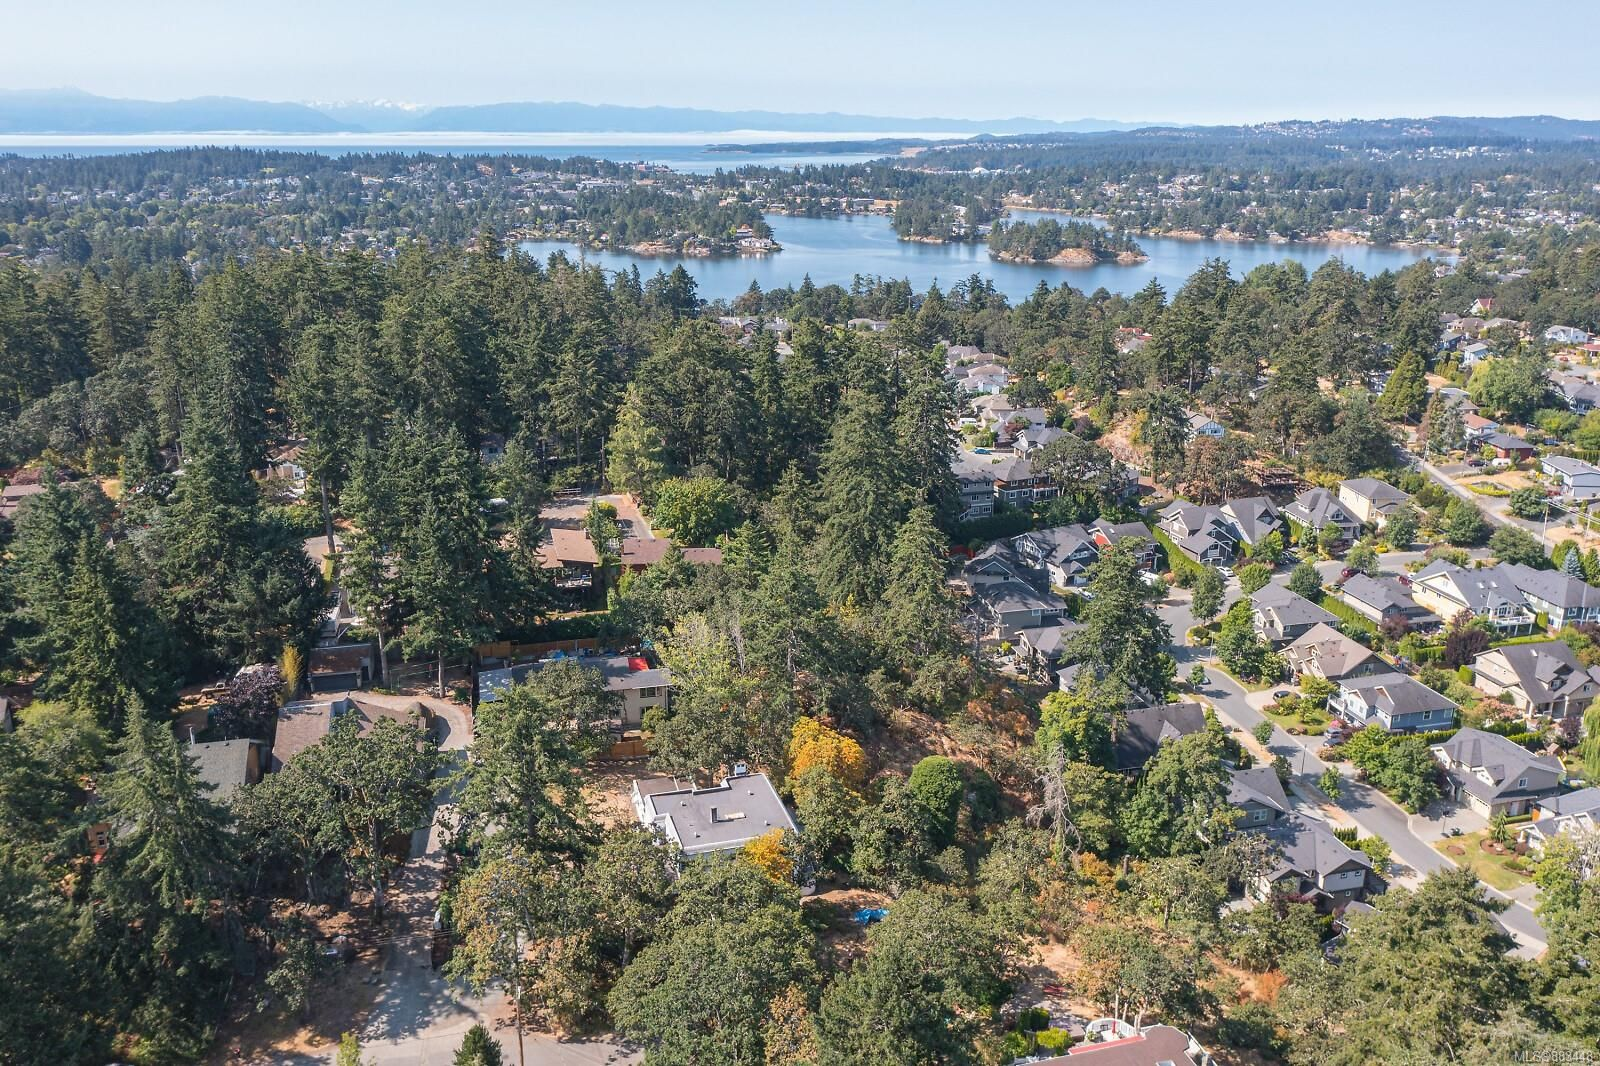 Main Photo: 1099 Jasmine Ave in : SW Strawberry Vale House for sale (Saanich West)  : MLS®# 883448